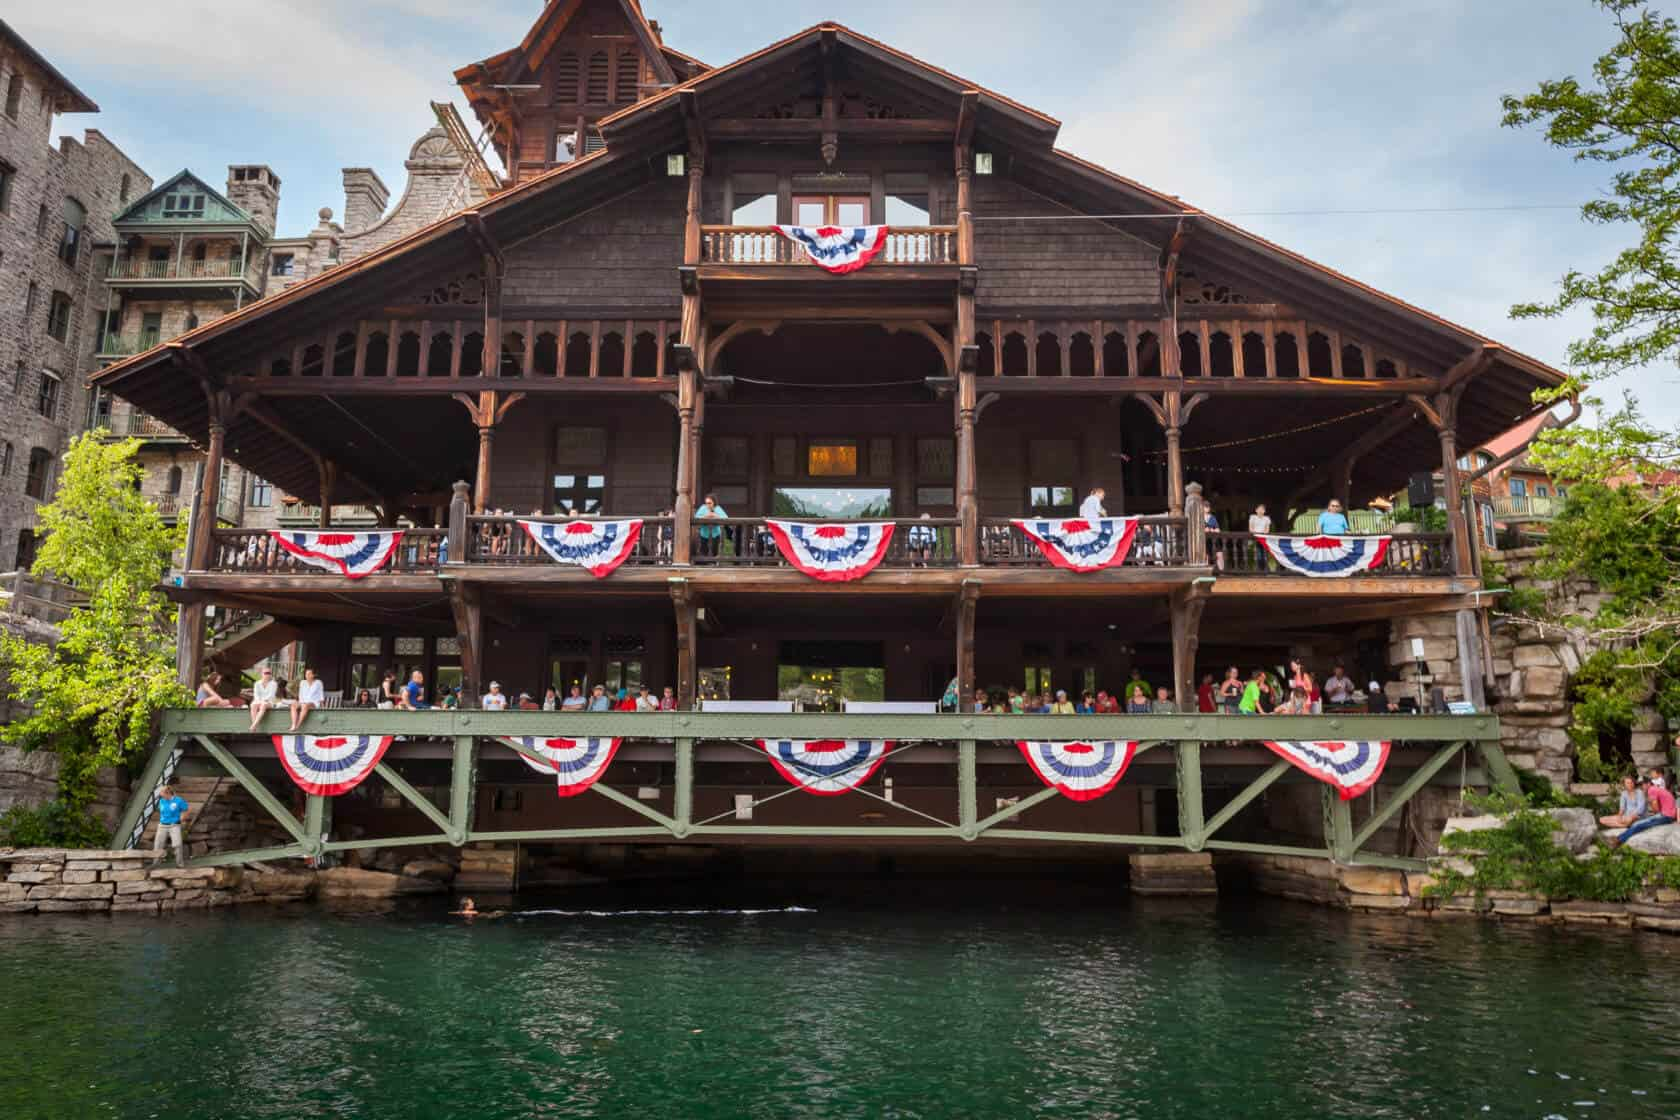 Mohonk Mountain House, 4th of July